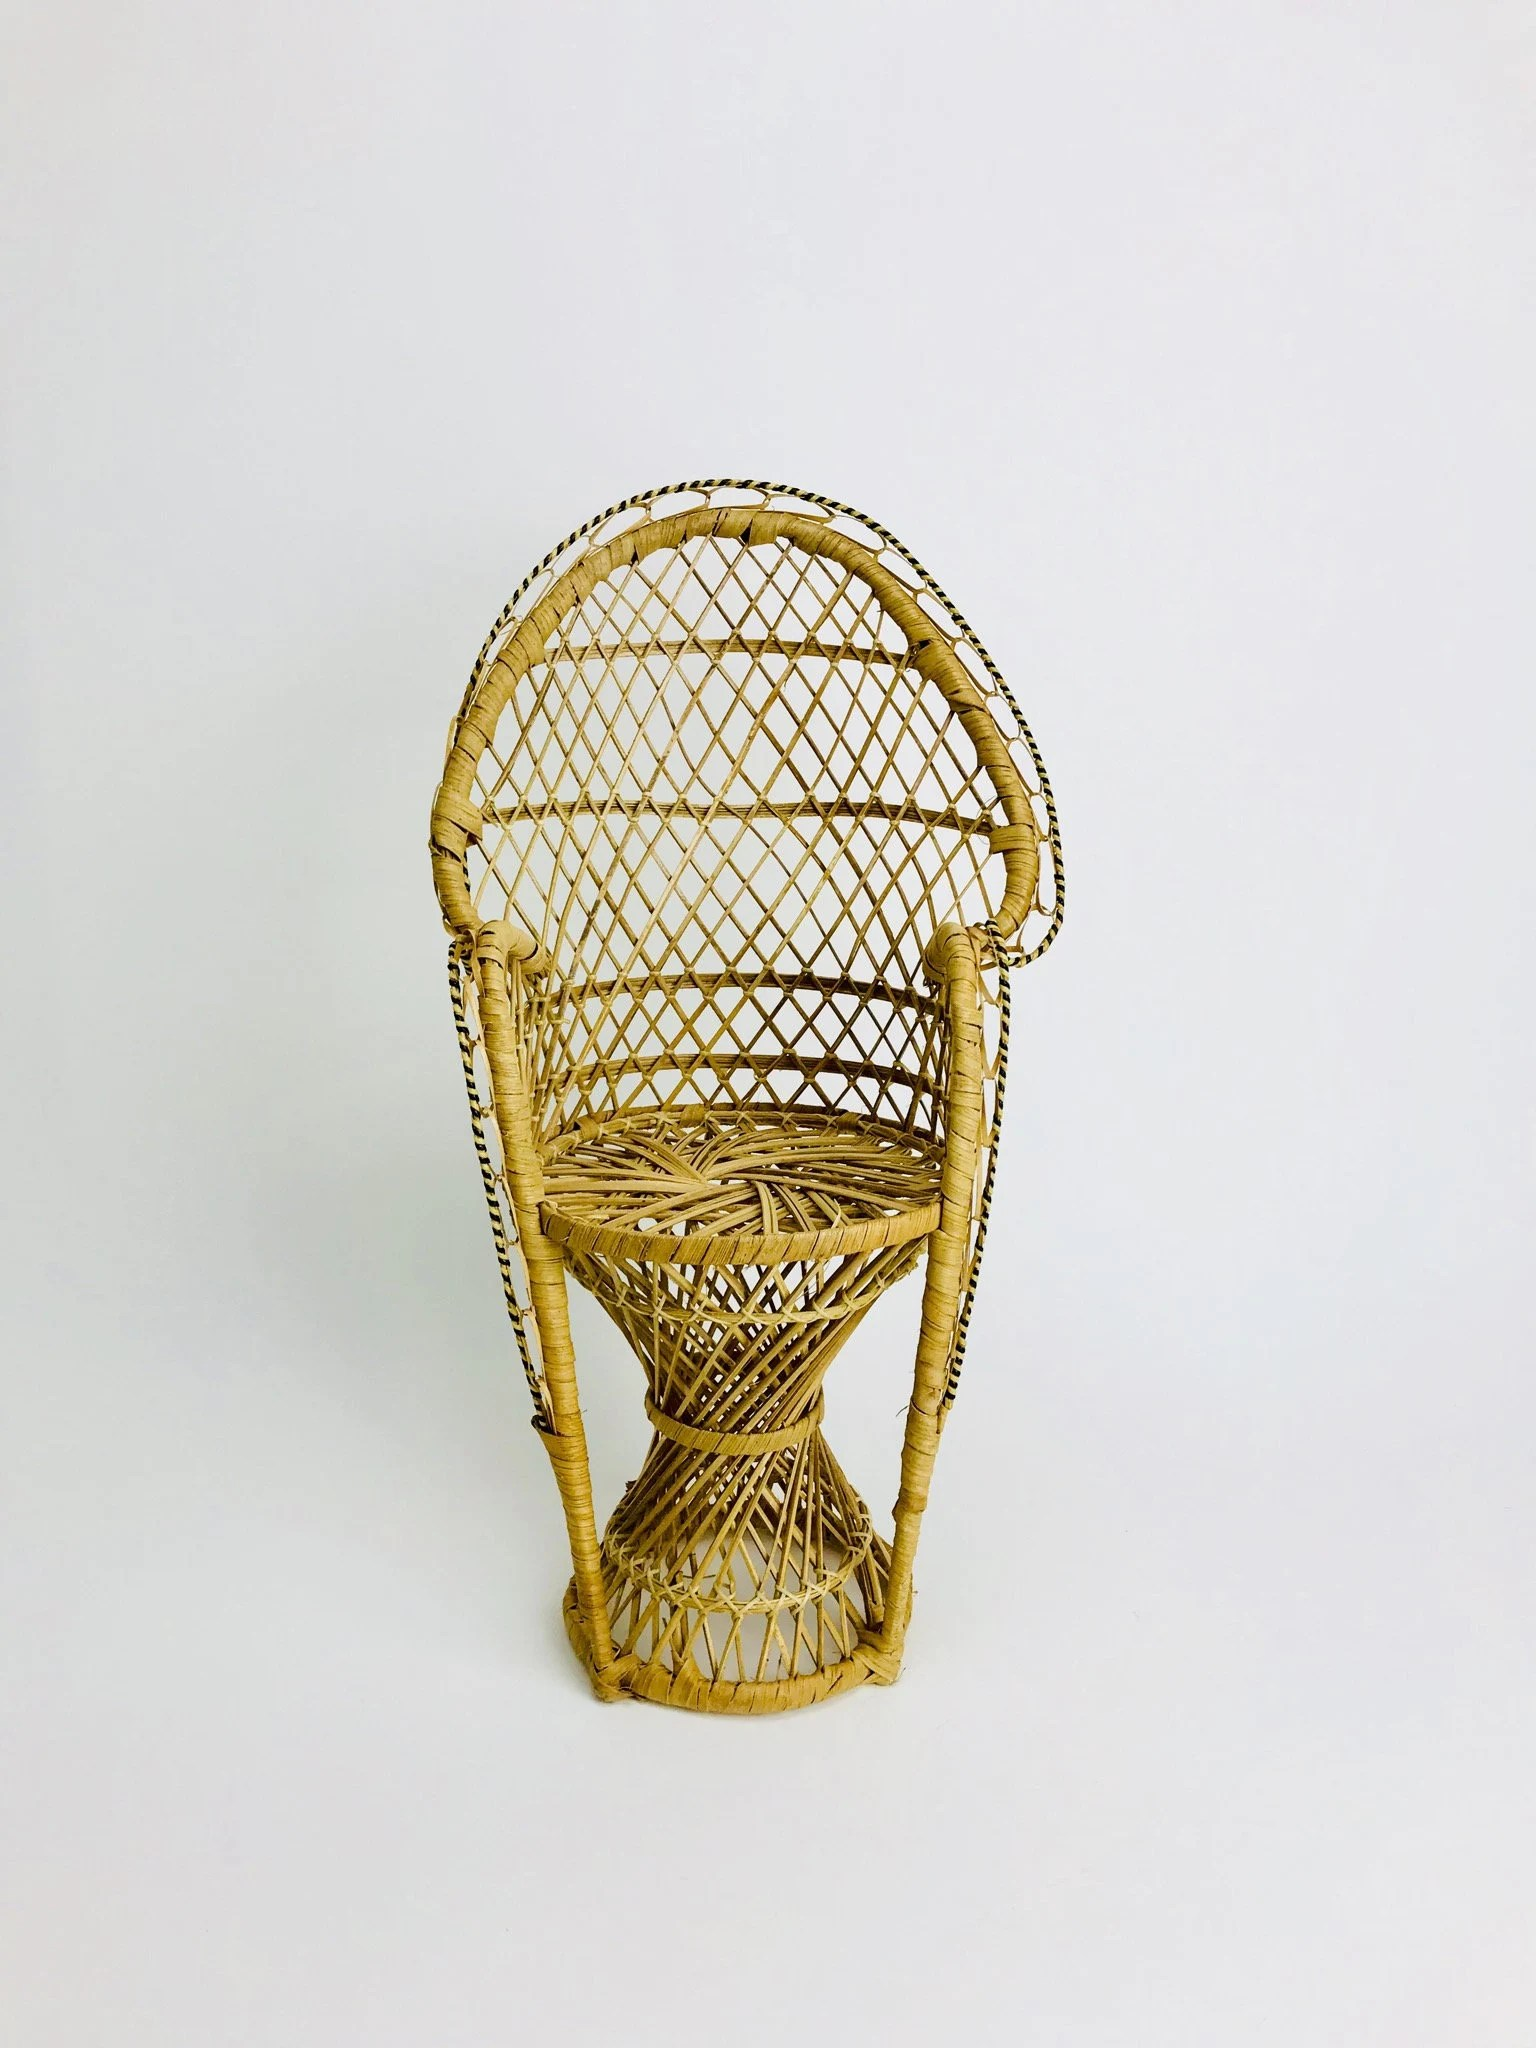 Rattan Hocker Peacock Chair Flower Hocker Decoration Vintage Rattan Nature Bohemia Boho Dolls Bohemia Throne